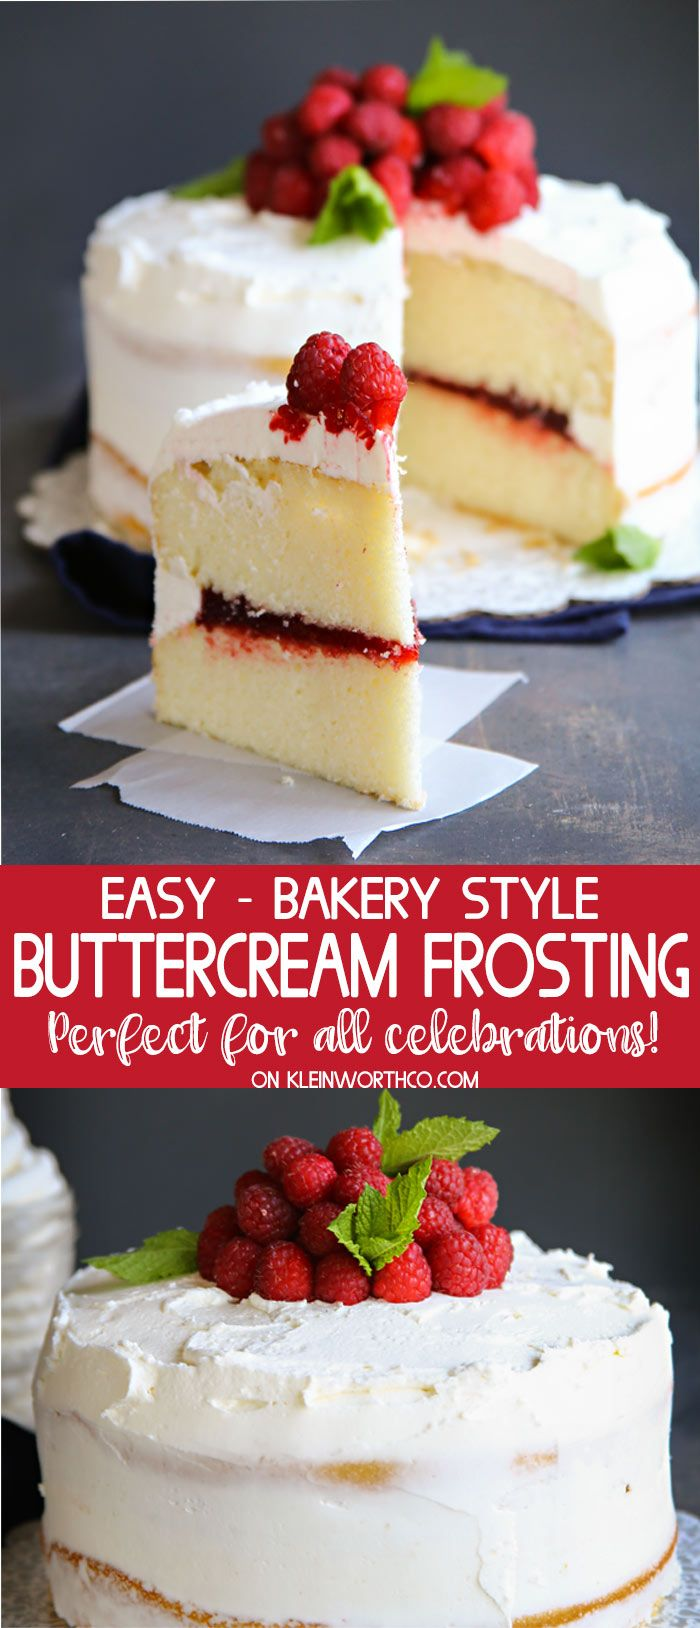 Bakery Shop Icing Recipe - Allrecipes.com